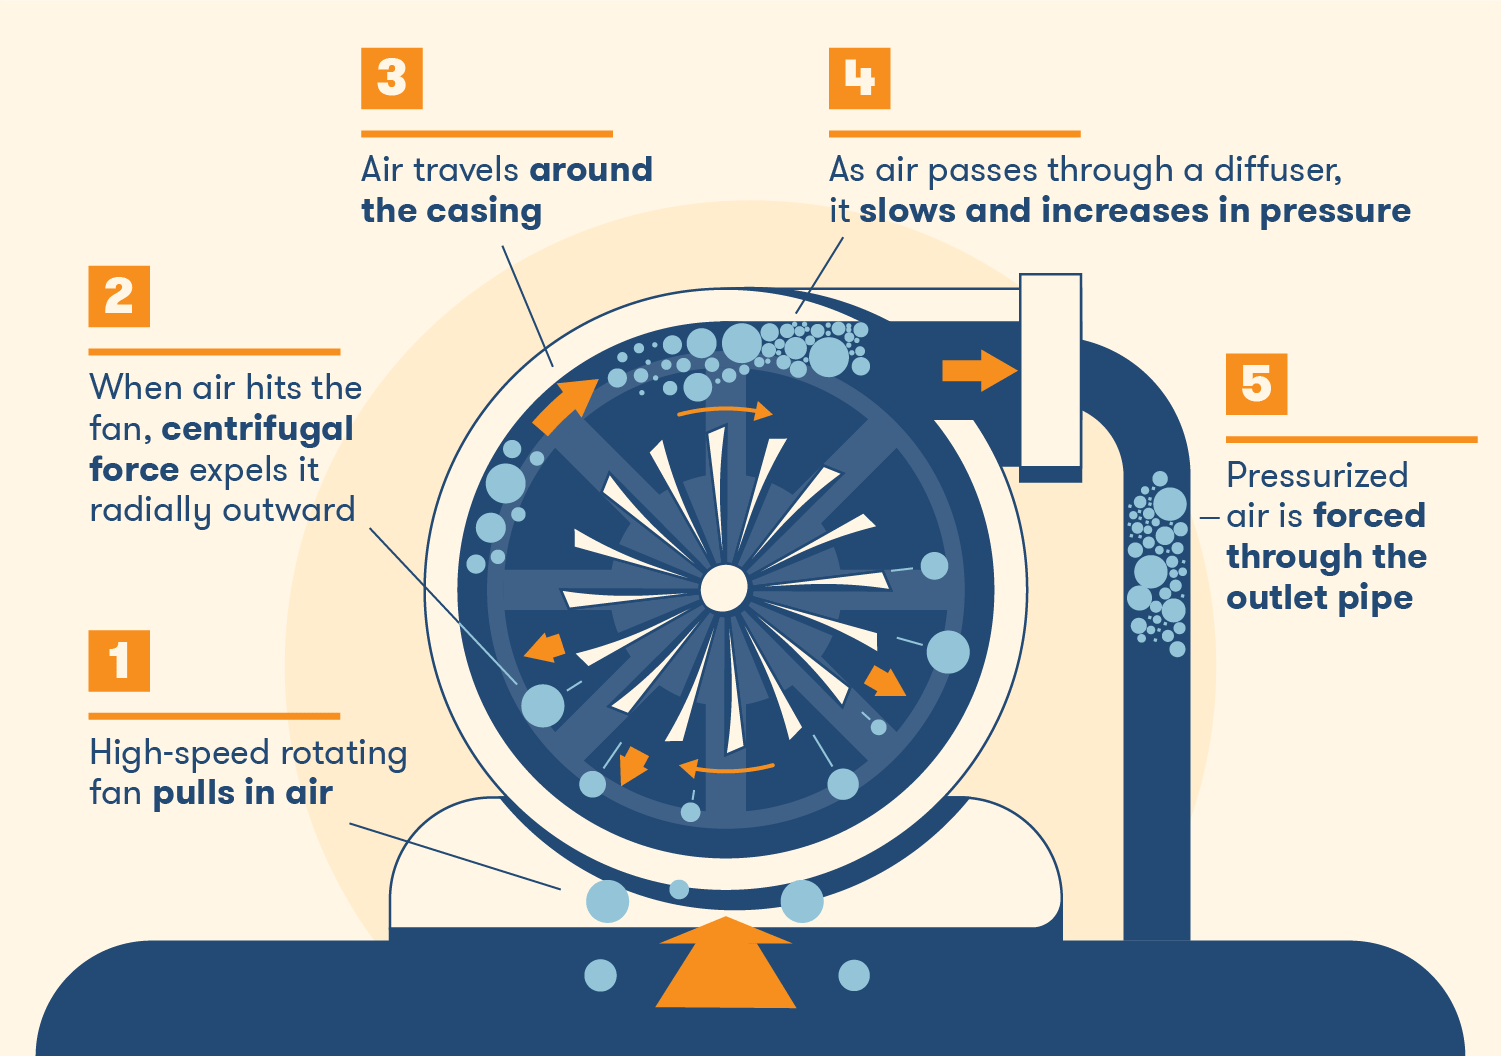 high speed rotating fan pulls air, when air hits the fan, centrifugal force expels it radically outward, air travels around the casing, as air passes through a diffuser it slows and increases in pressure, pressurized air is forced through the outlet pipe